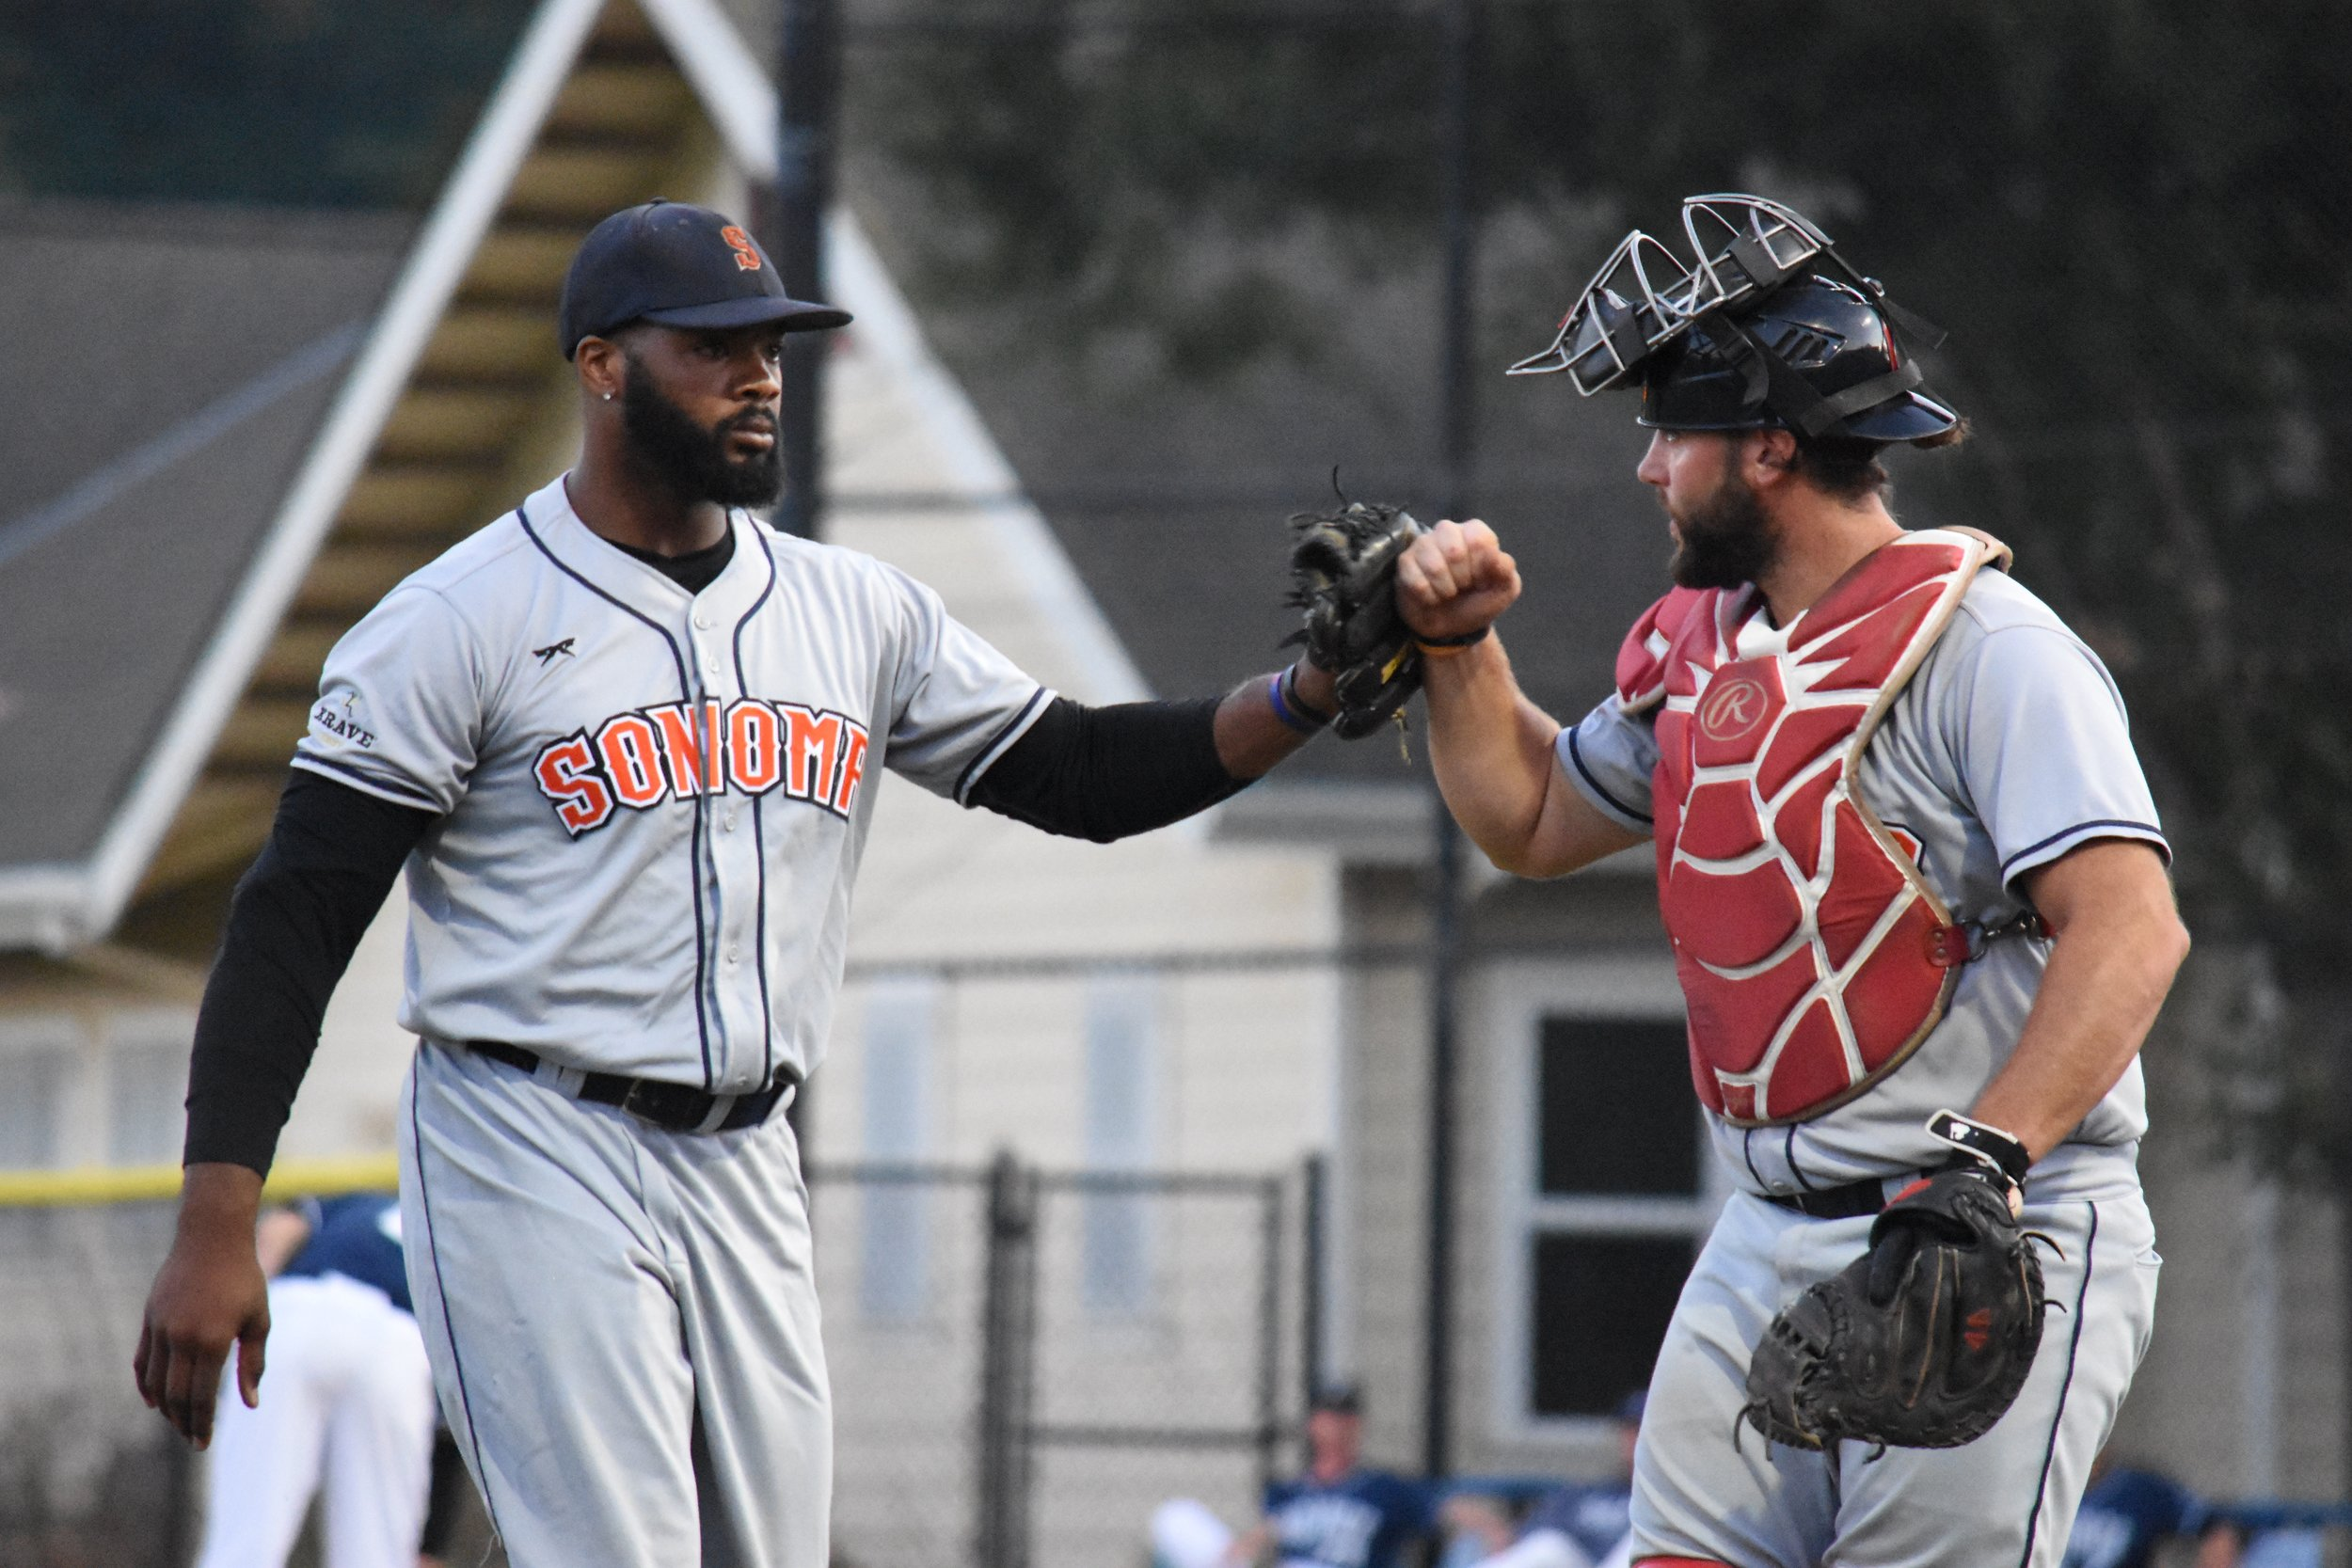 Ty'Relle Harris (left) returned to the mound for the Stompers and pitched five innings of scoreless ball in Sonoma's 6-5 loss to the San Rafael Pacifics in extras. (James W. Toy III / Sonoma Stompers)